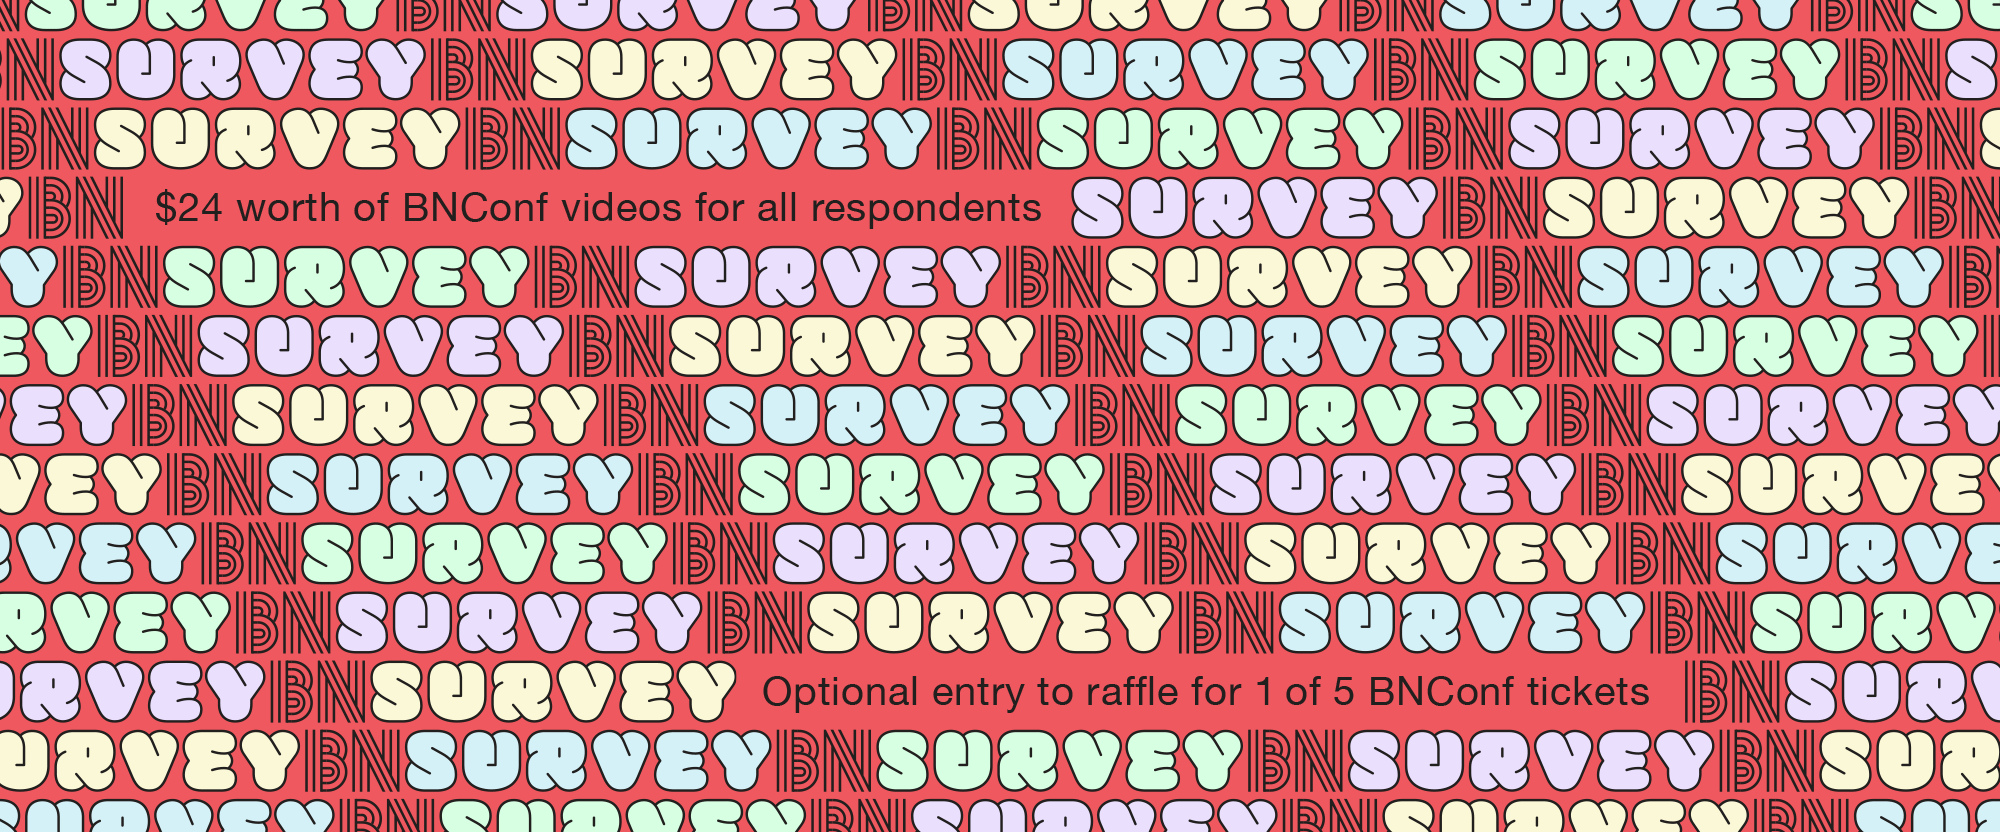 Brand New Survey